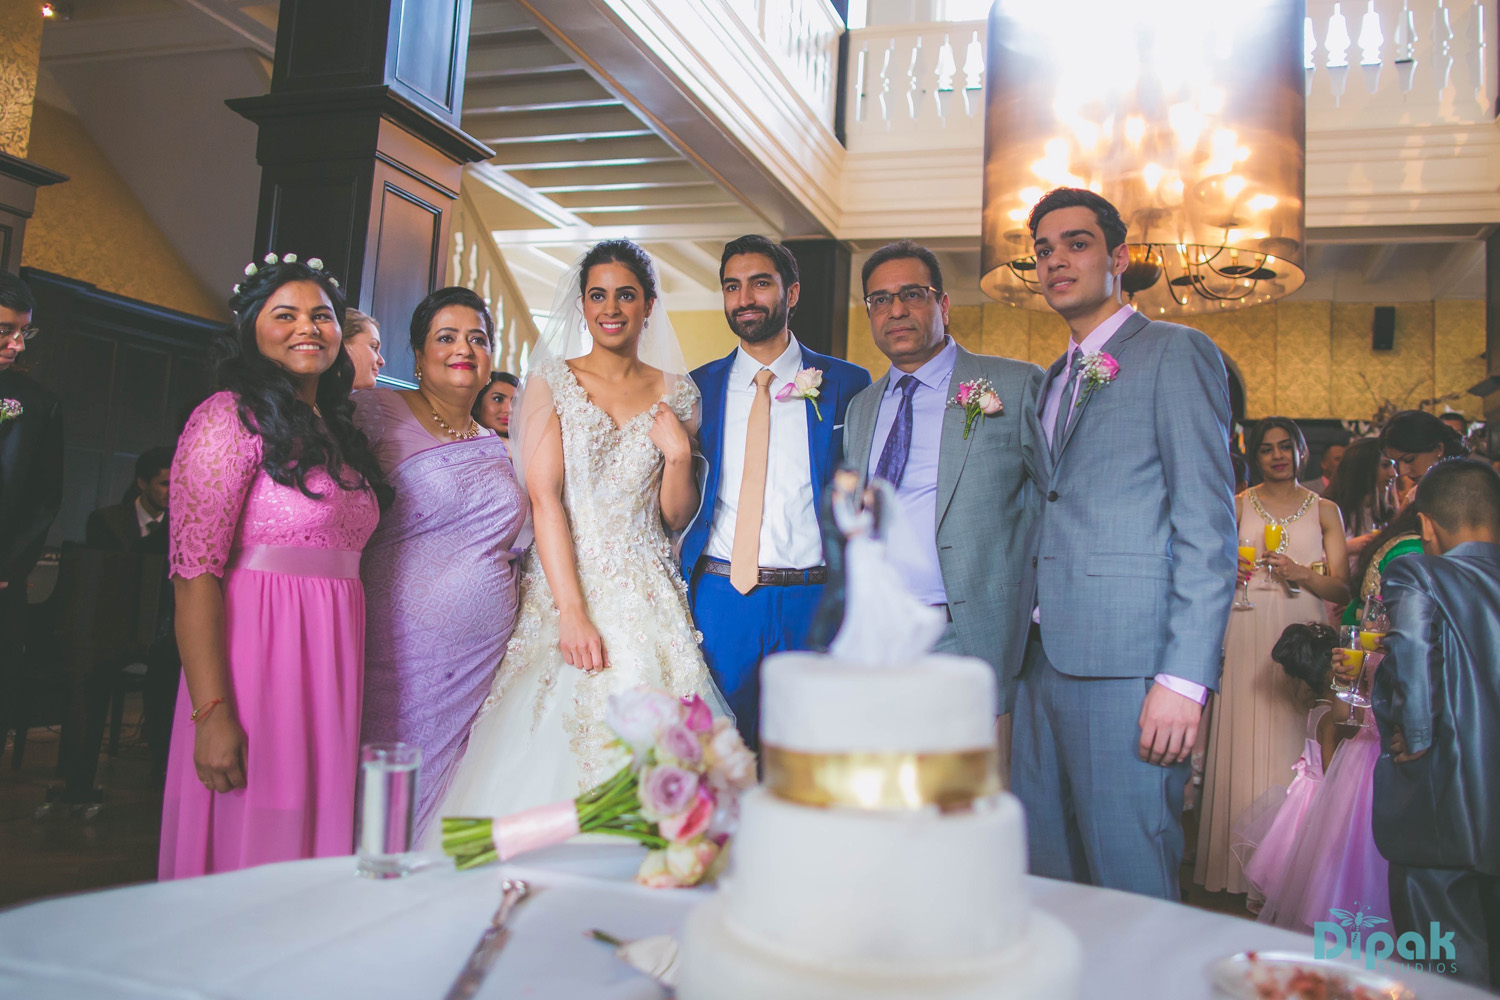 Ankita + Manmeet | The Maharani Diaries